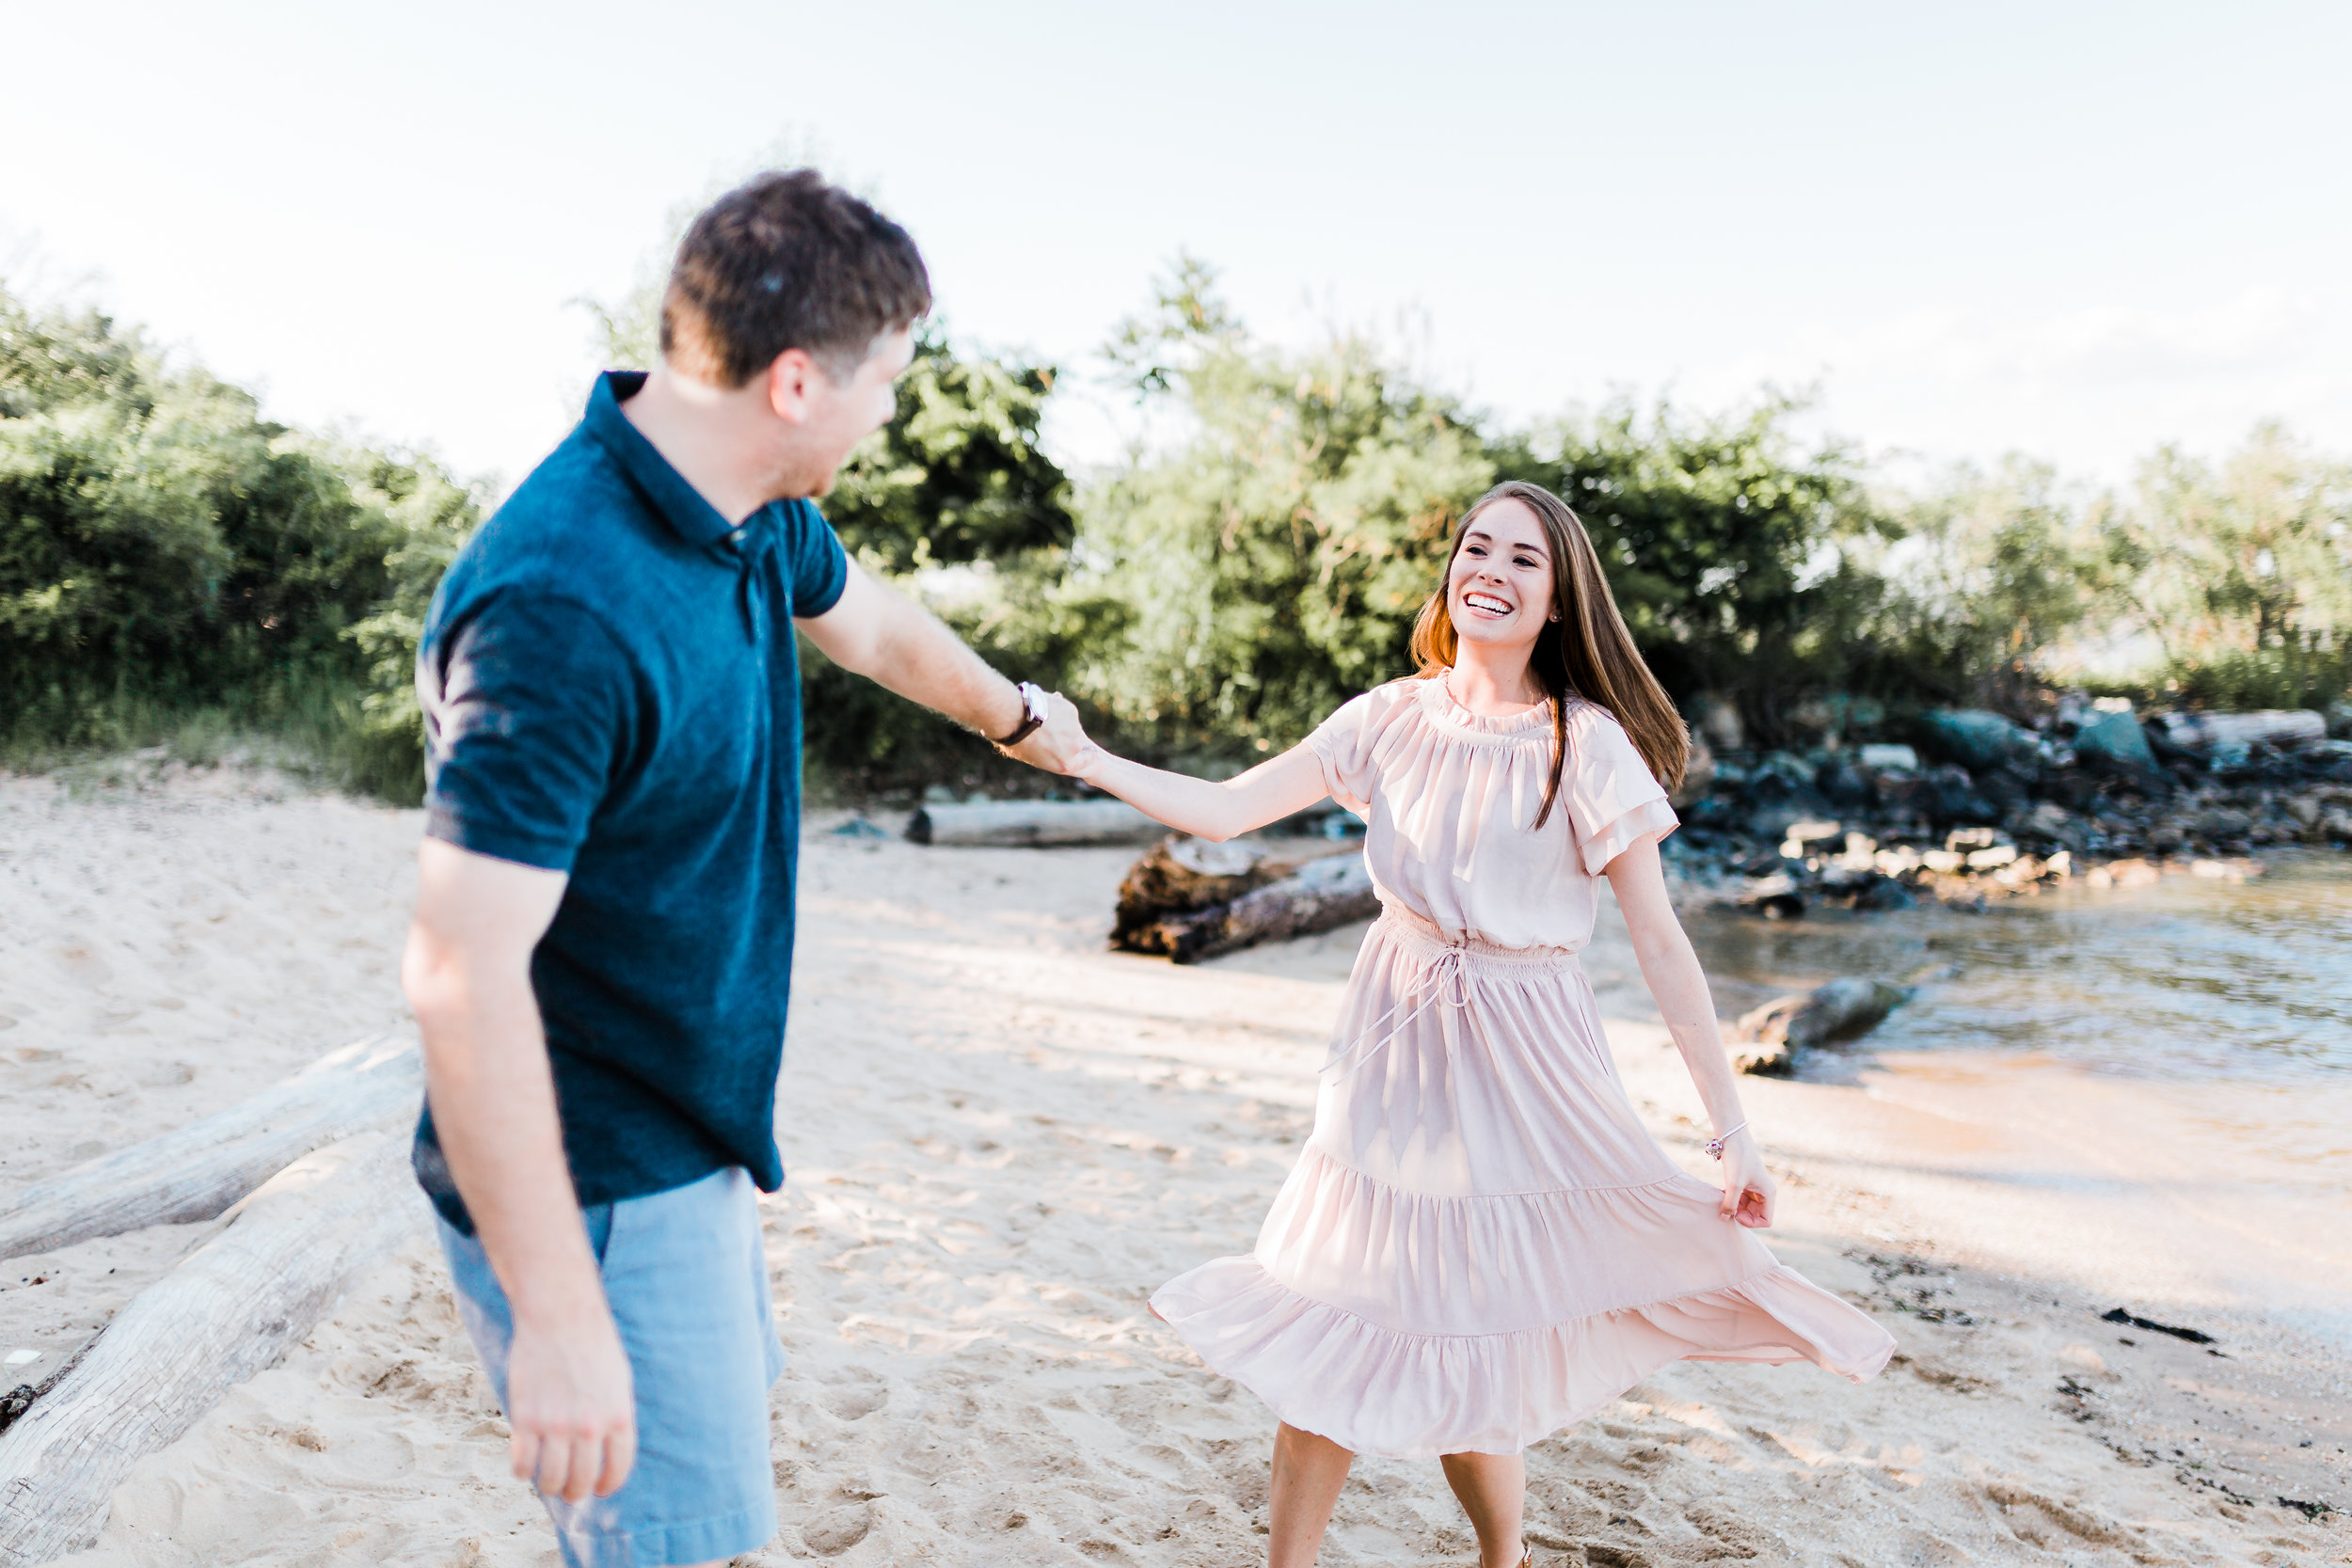 couple dancing on the beach during their engagement session in maryland - bayside - md photographer